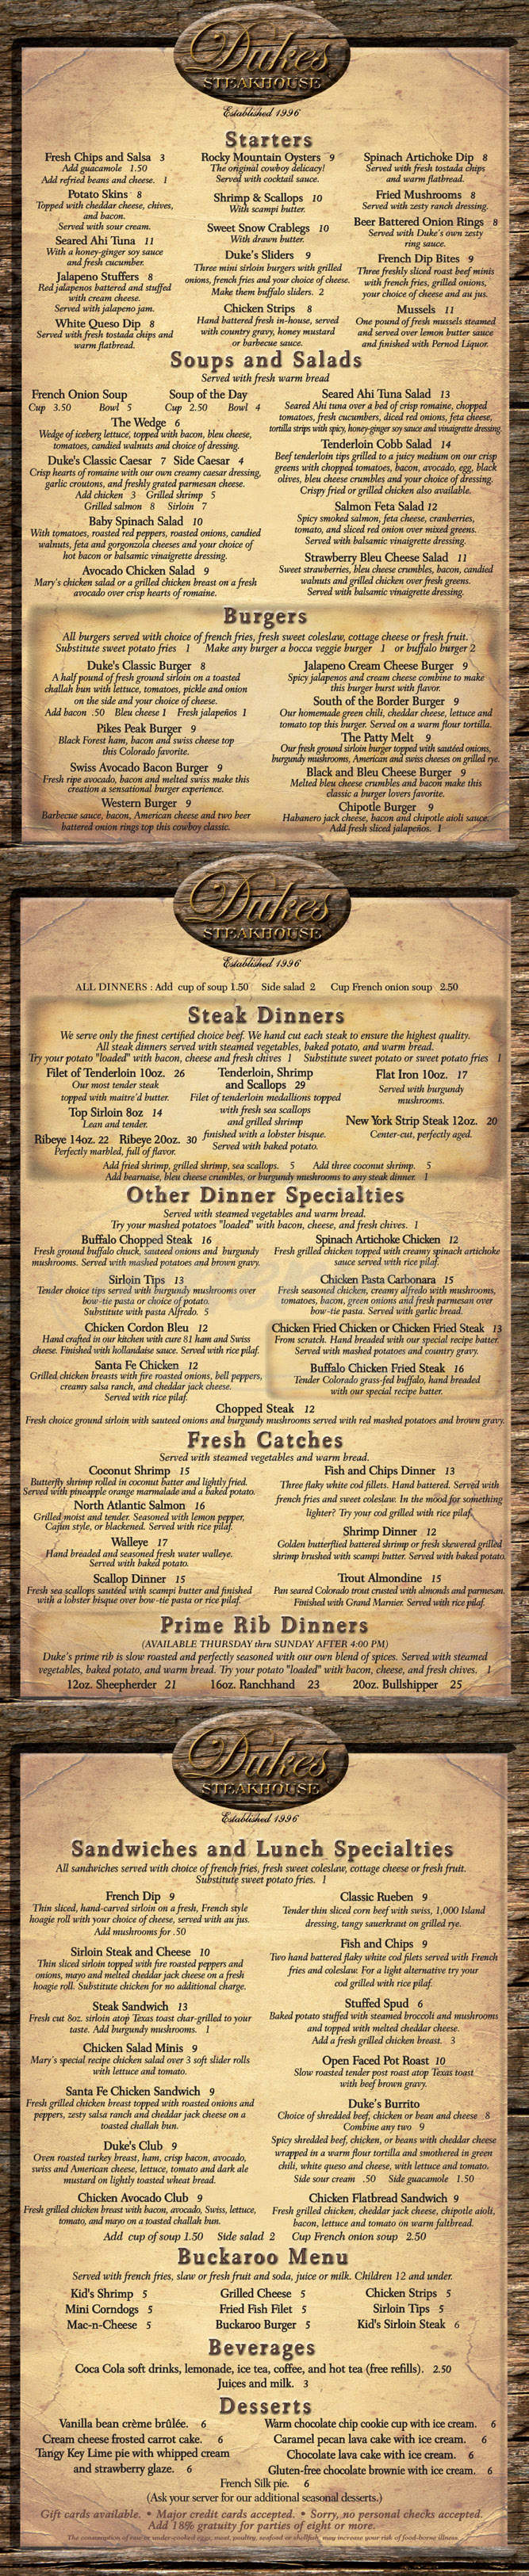 menu for Duke's Steakhouse